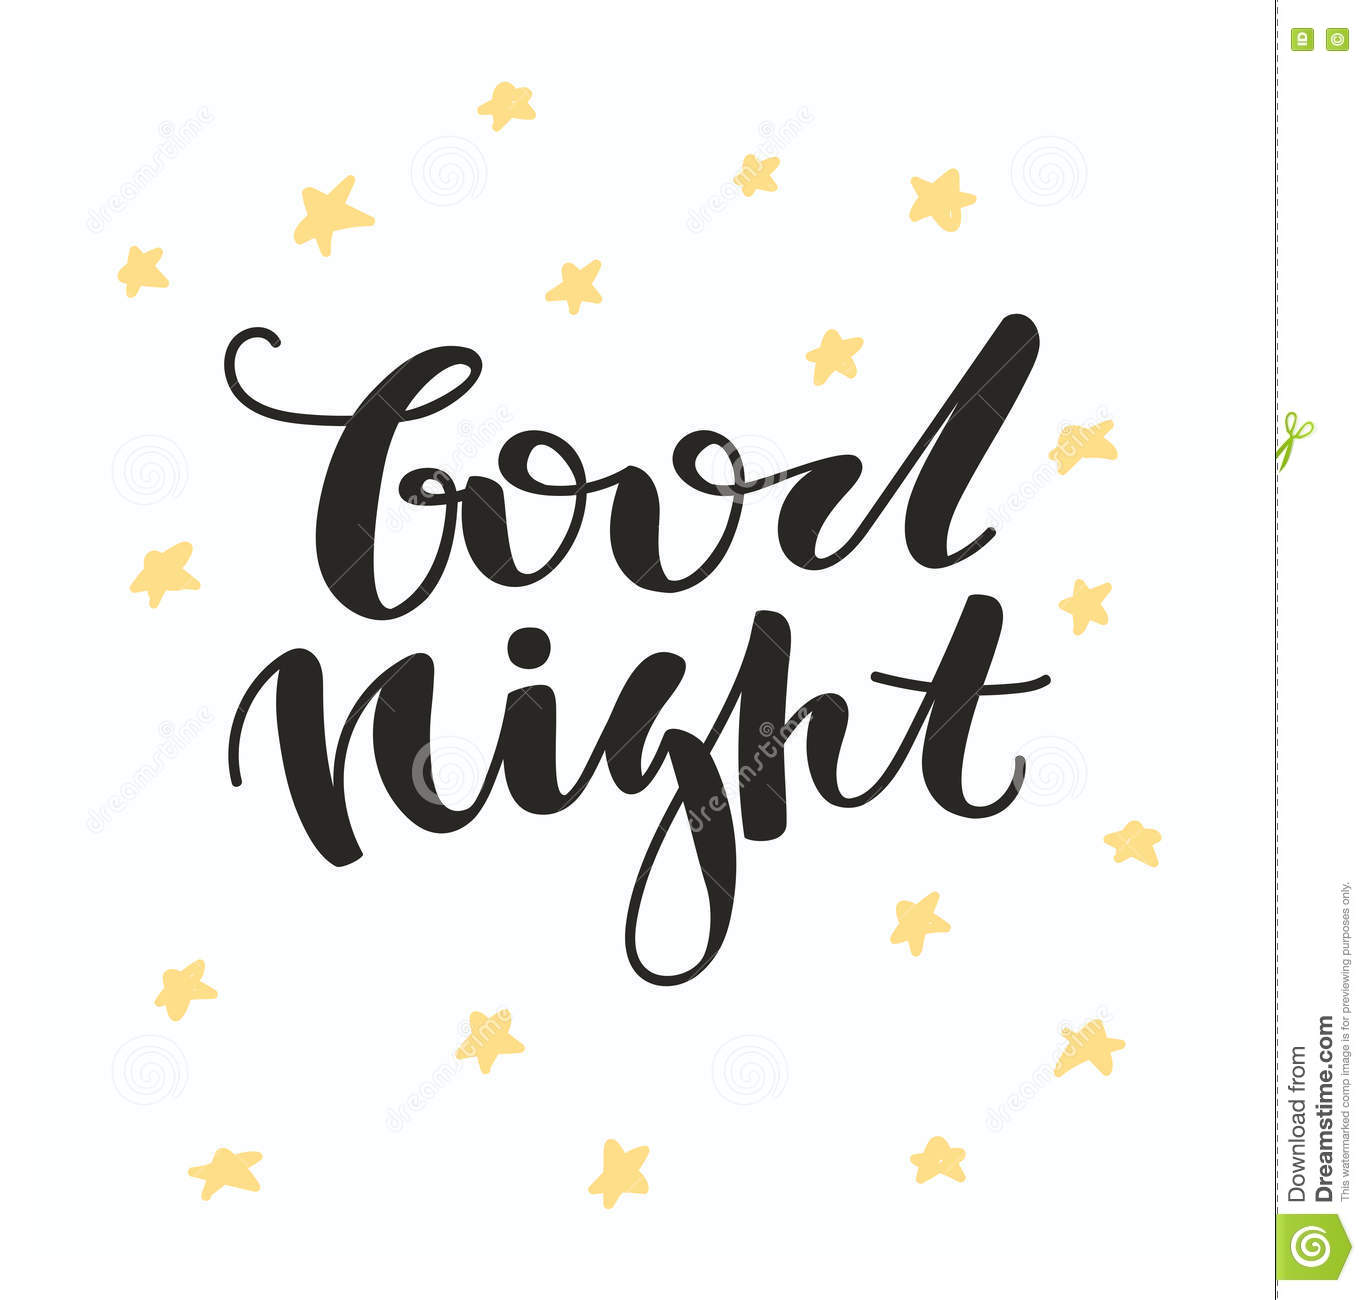 good evening letters with svetlana 6-8 emails p/dy with india they end all their communicques with 'best regards' or 'thanks and regards' i would like to end my message with have a good evening/have a great evening i need it translated from english to hindi or urdu in english letters.